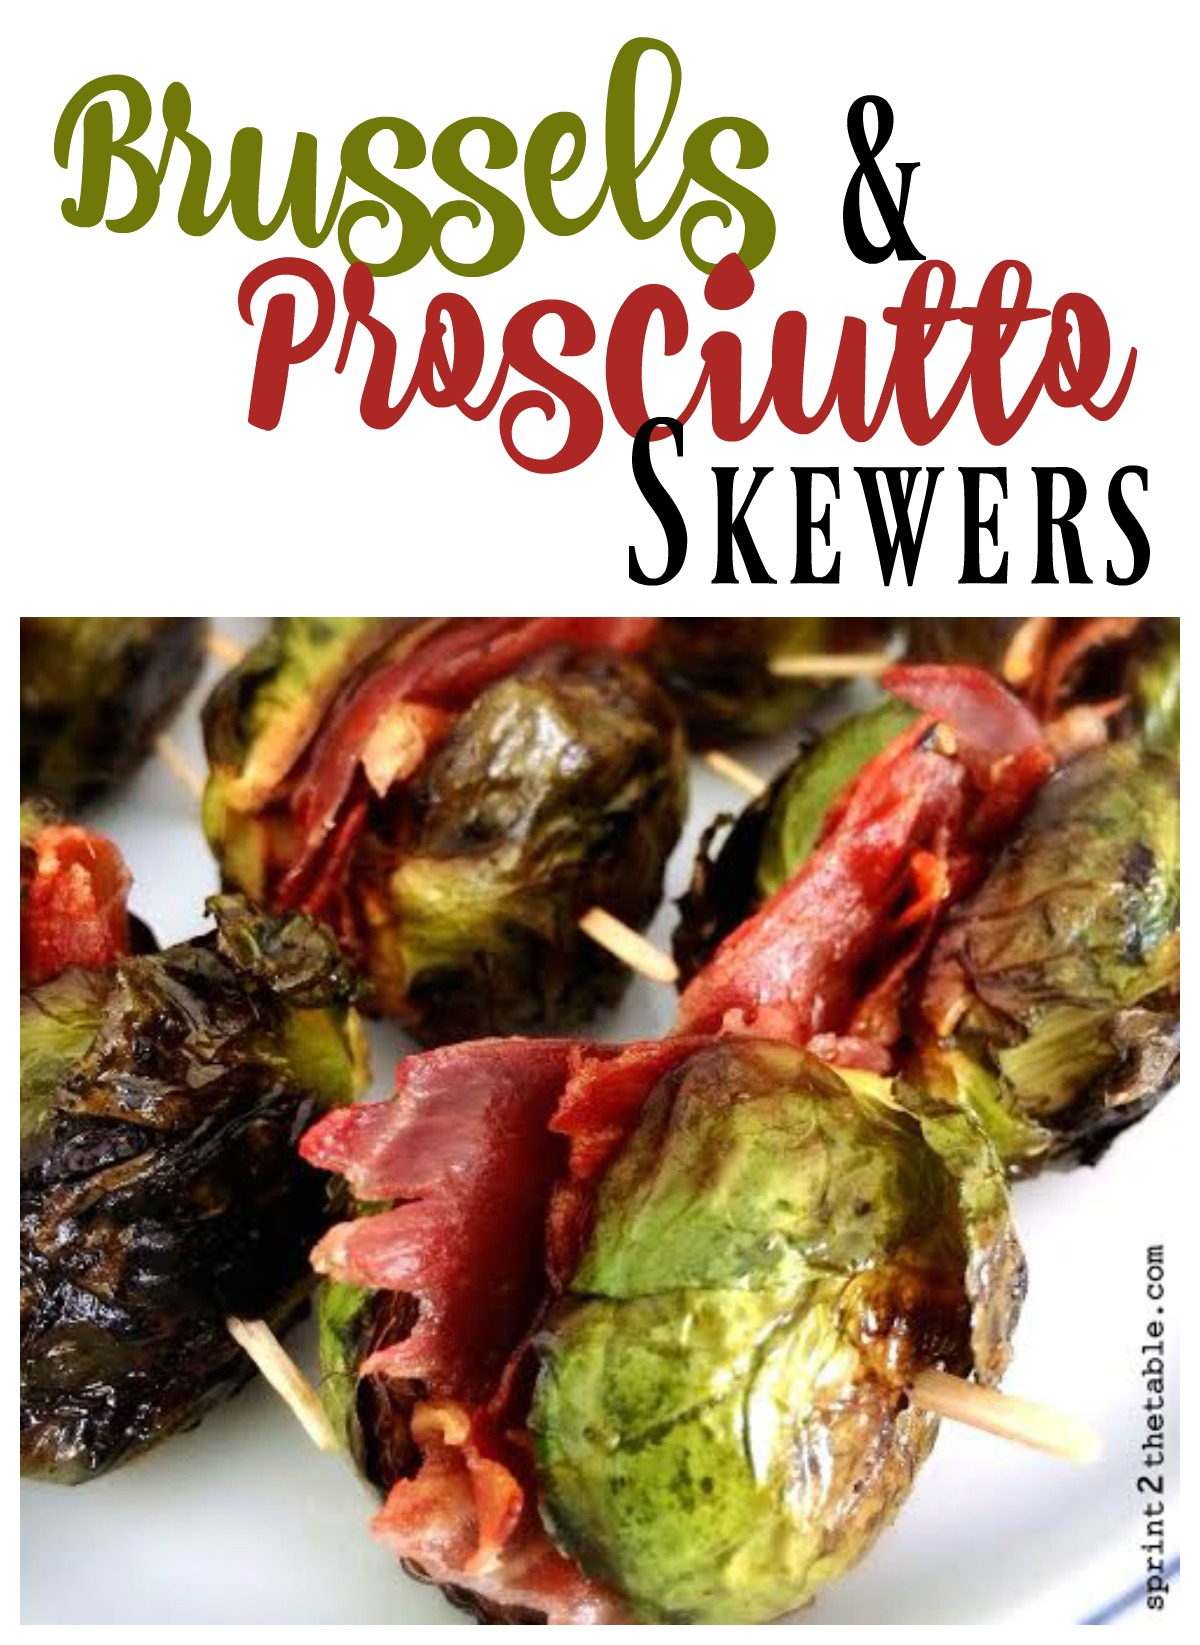 These Brussels and Prosciutto Skewers are a great make-ahead holiday recipe!